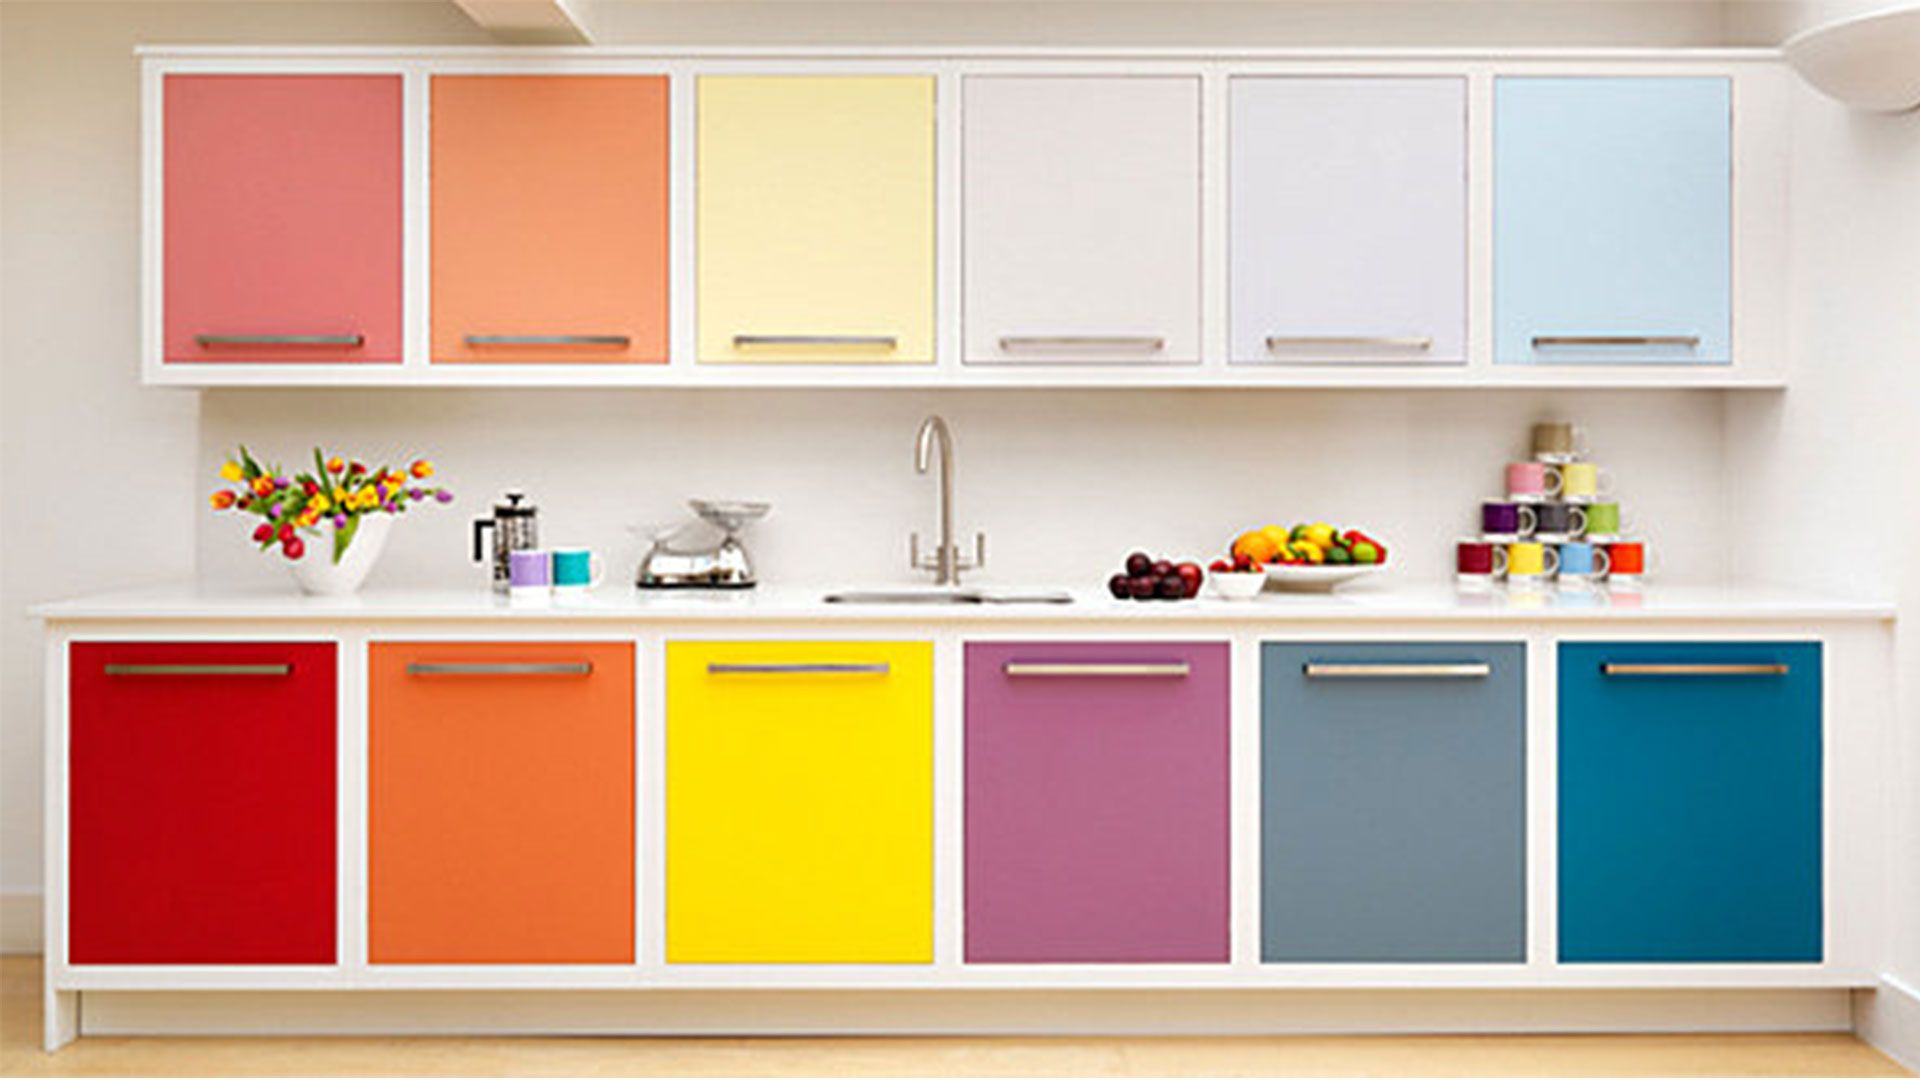 coloured kitchen cabinet doors. 15 Modern kitchen design ideas in bright color combinations  Cabinet Ideas colourful cabinet doors for minimalist